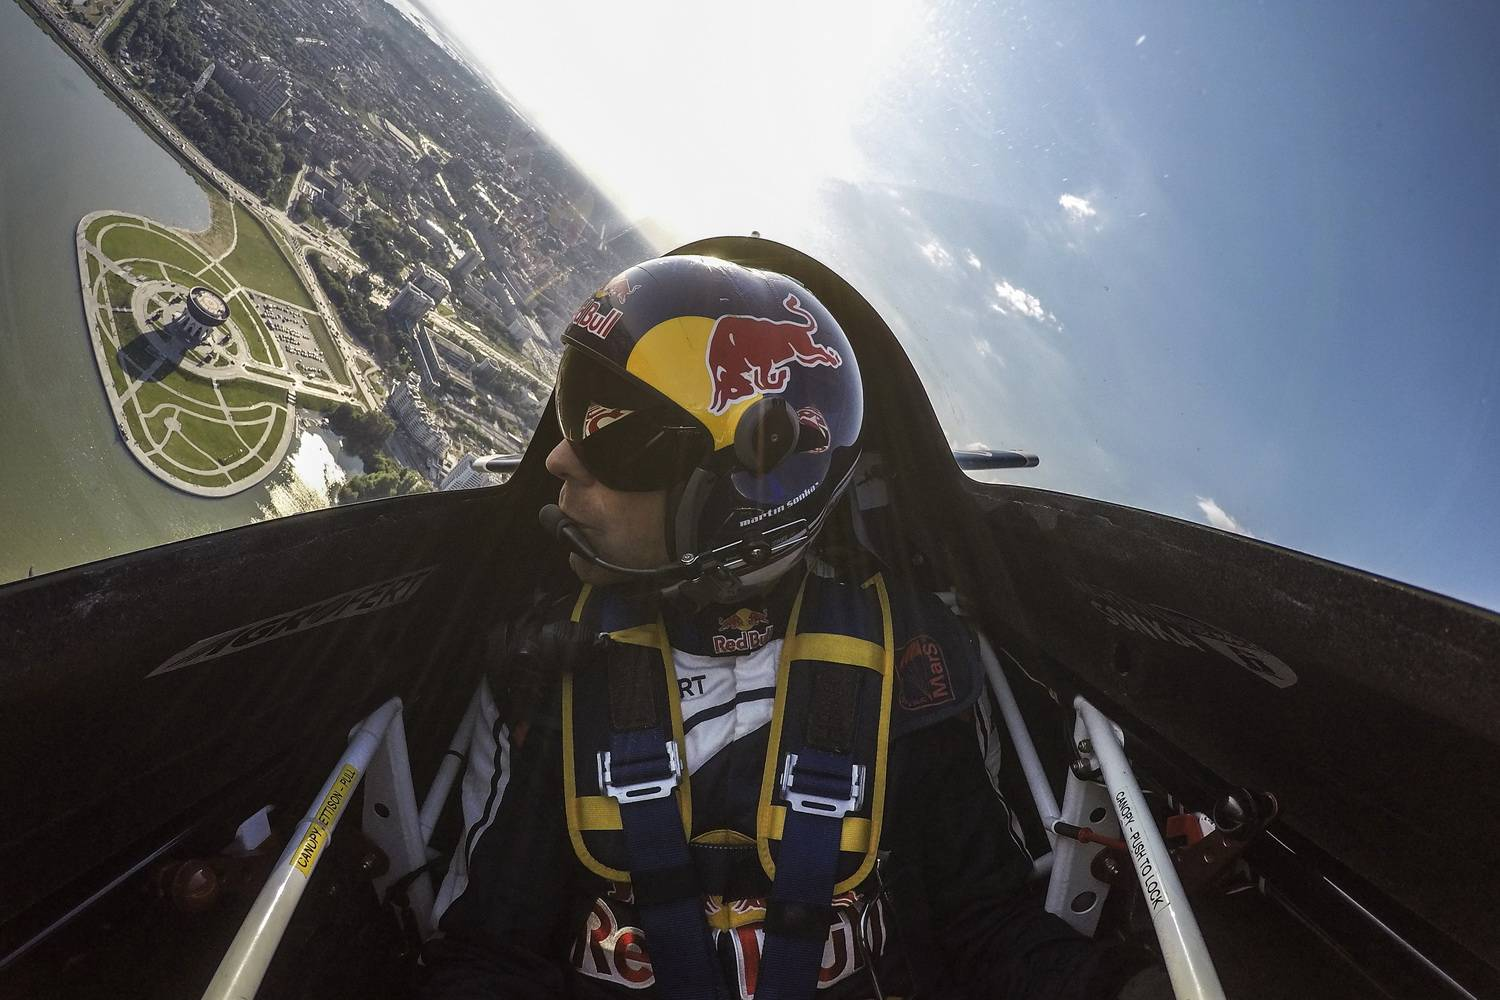 Фото: Joerg Mitter / Red Bull Content Pool